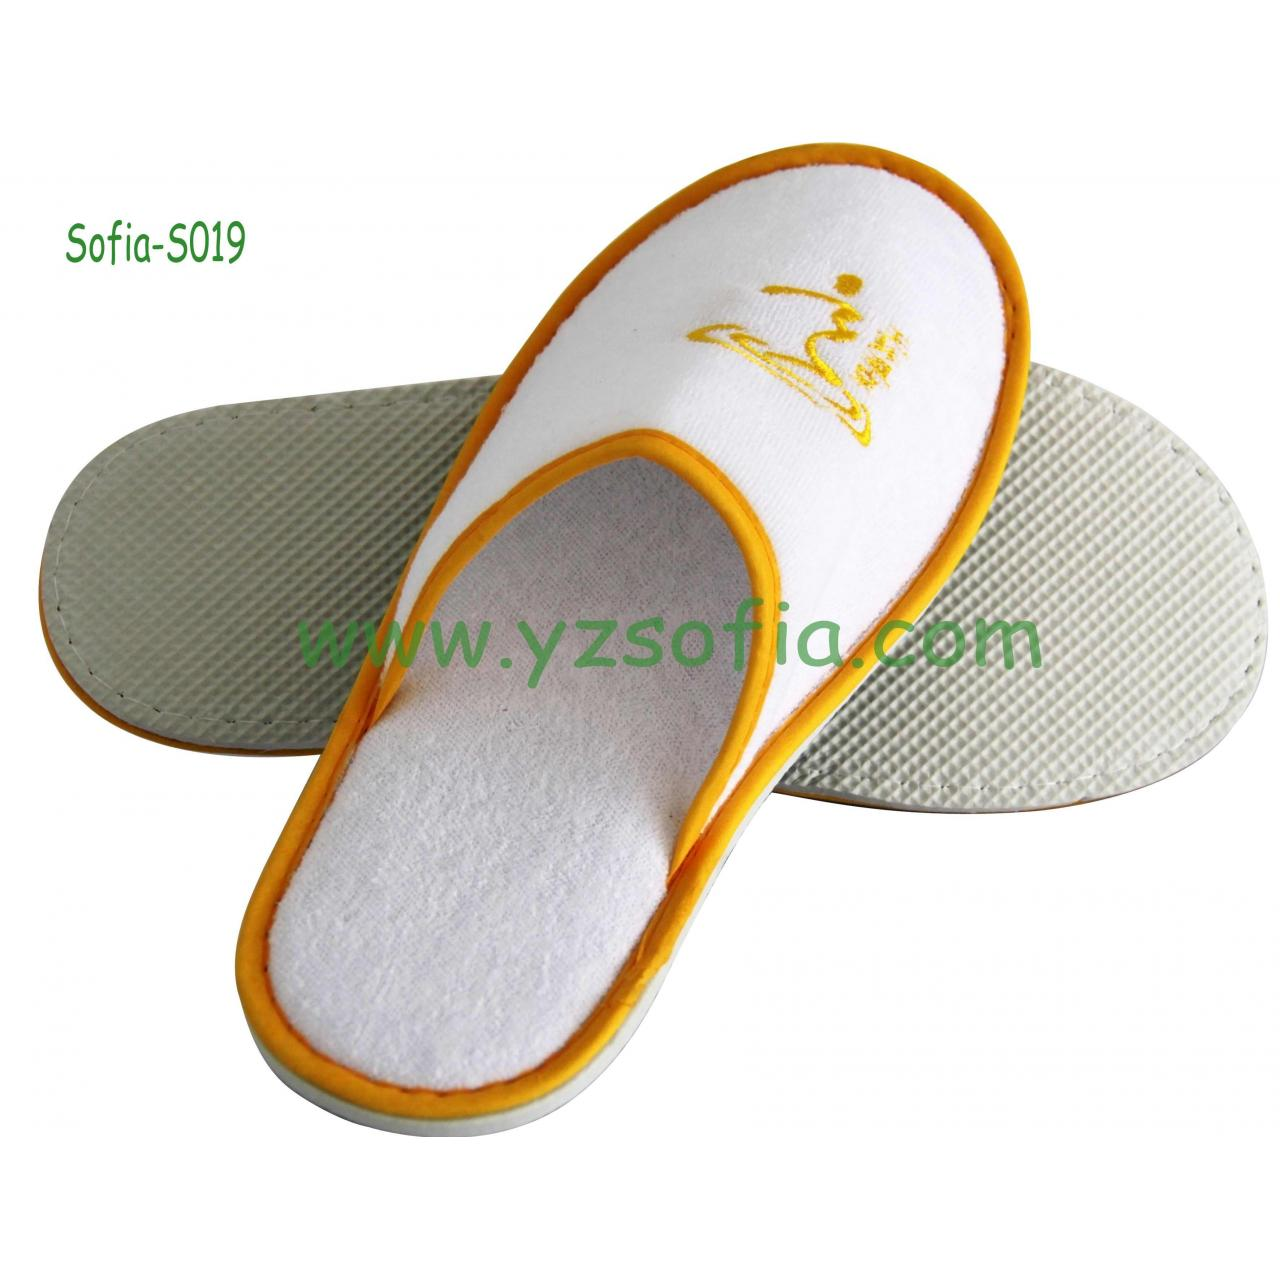 Quality Sofia-S0019,High Quality Hotel Slipper/Airline Disposable Slipper for sale